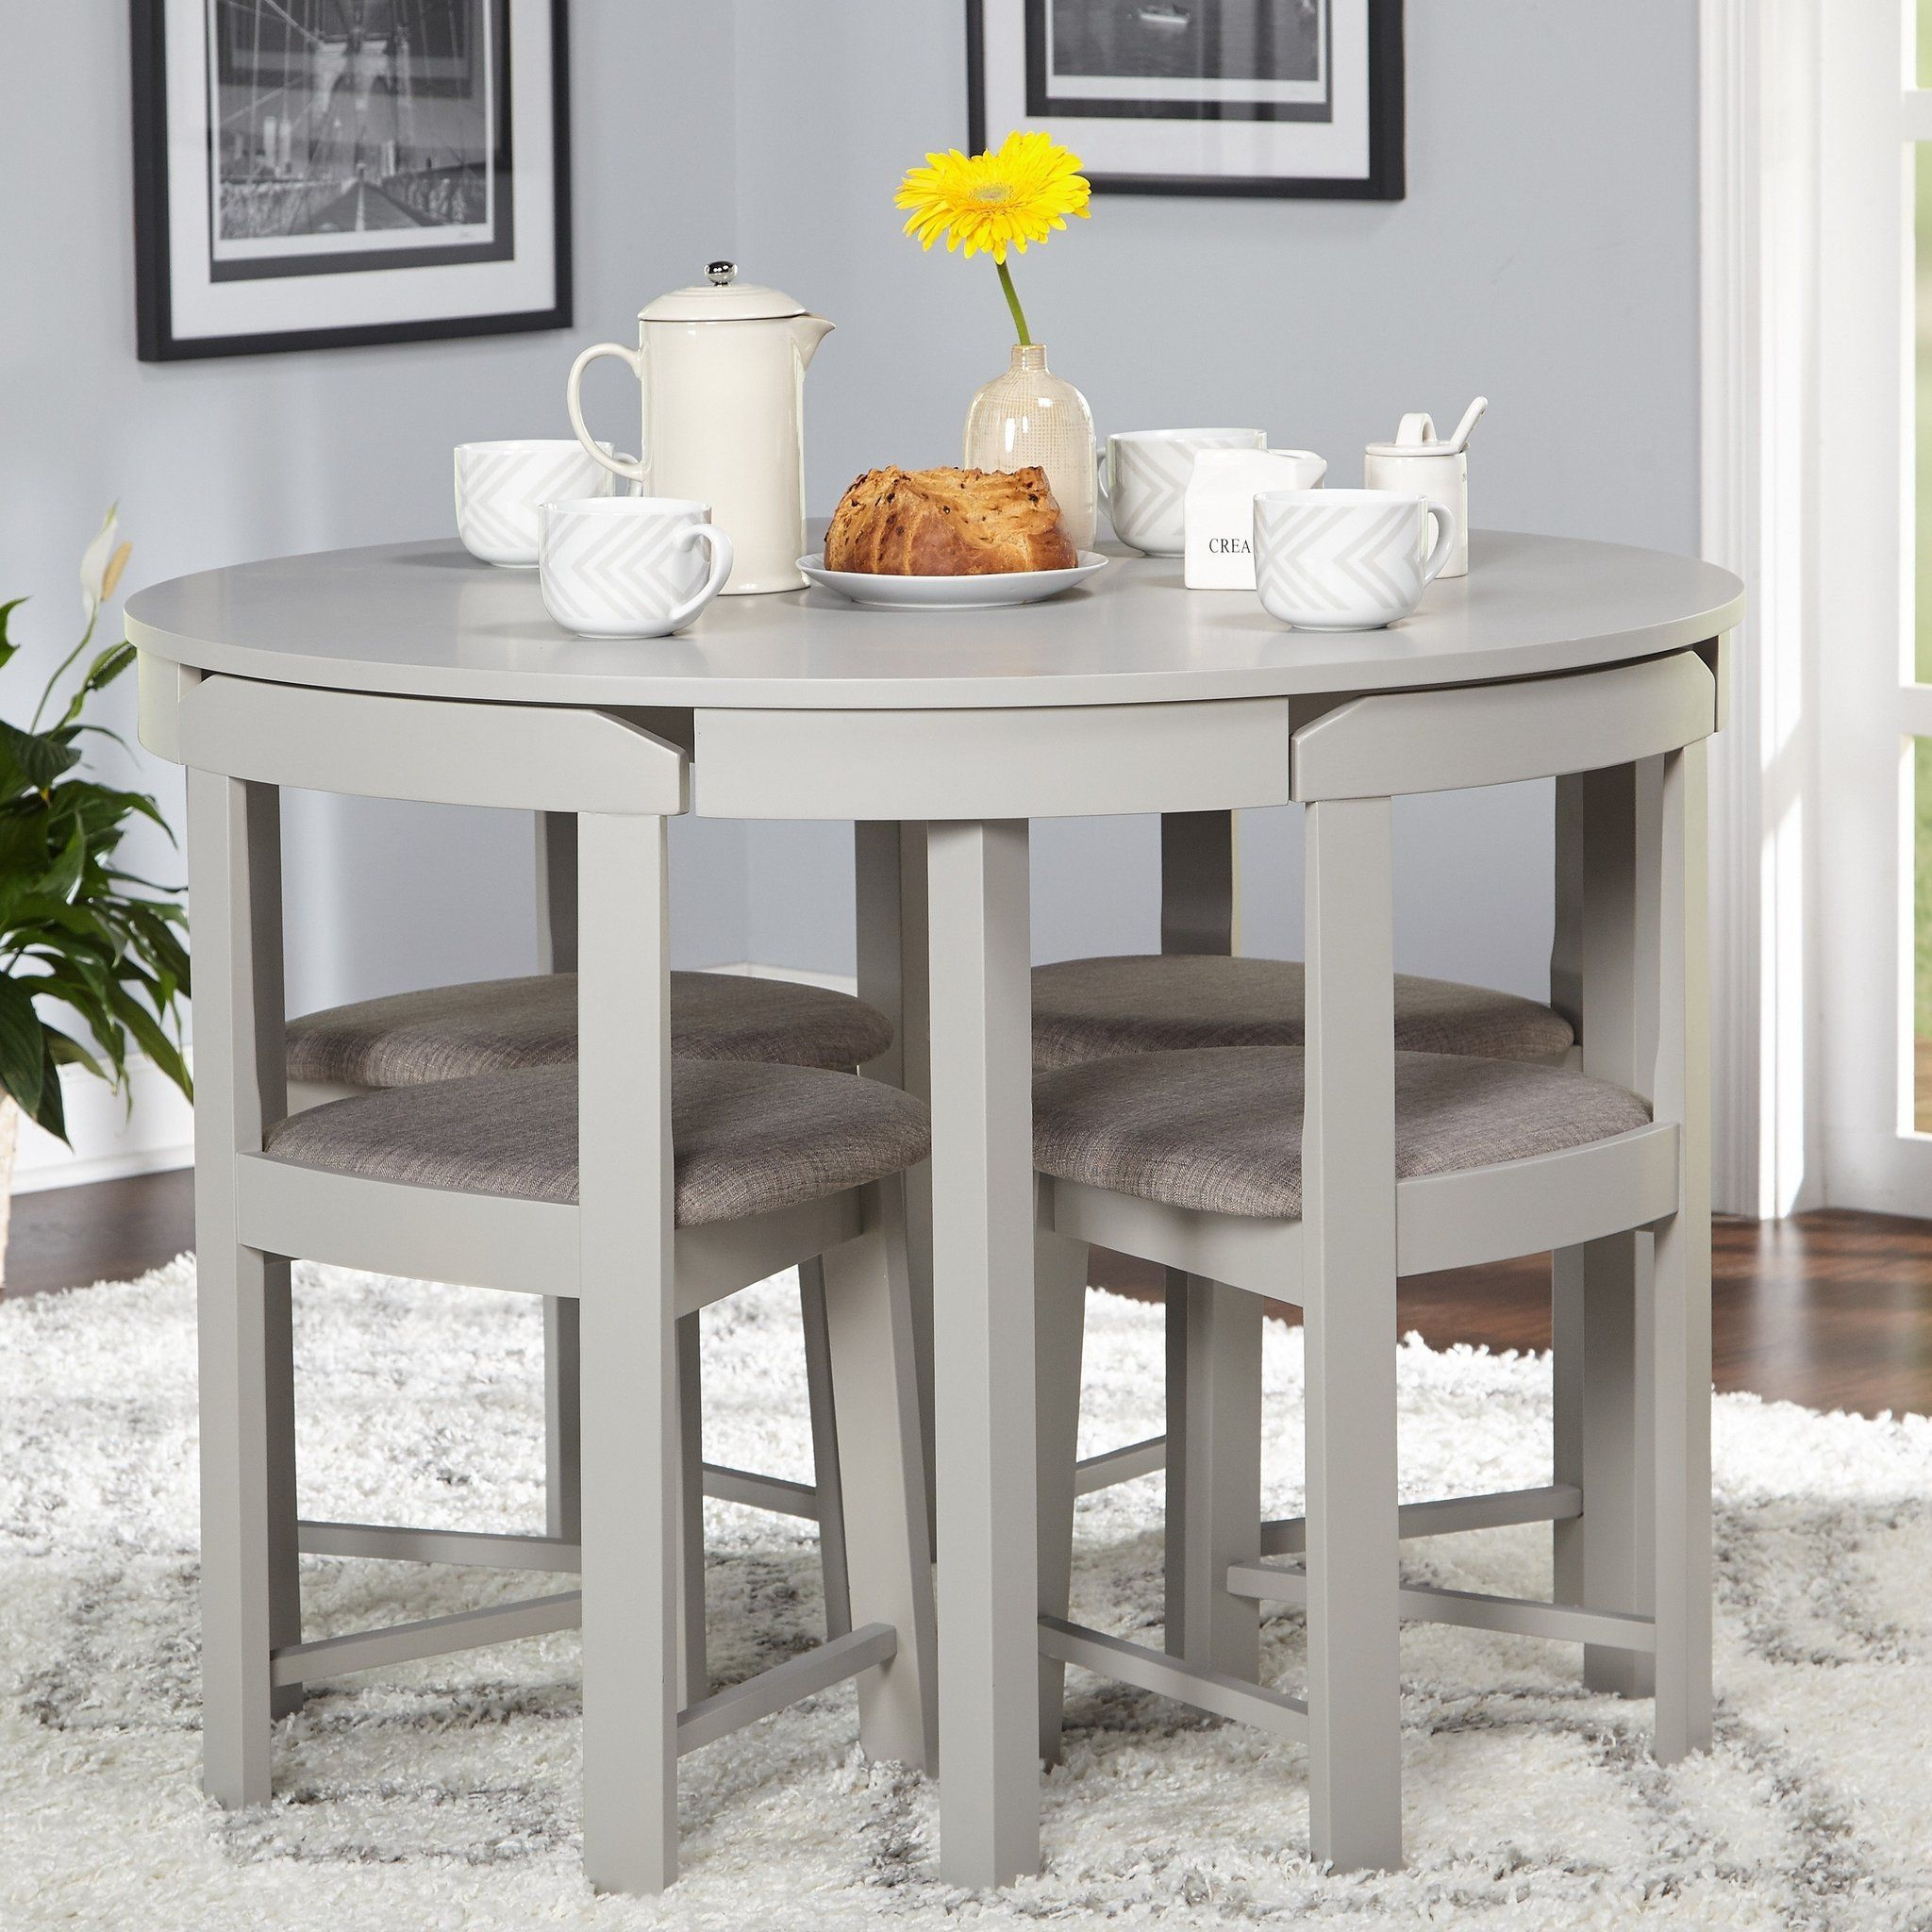 Top 10 Modern Round Dining Tables Round Dining Table Modern Round Dining Room Farmhouse Dining Room